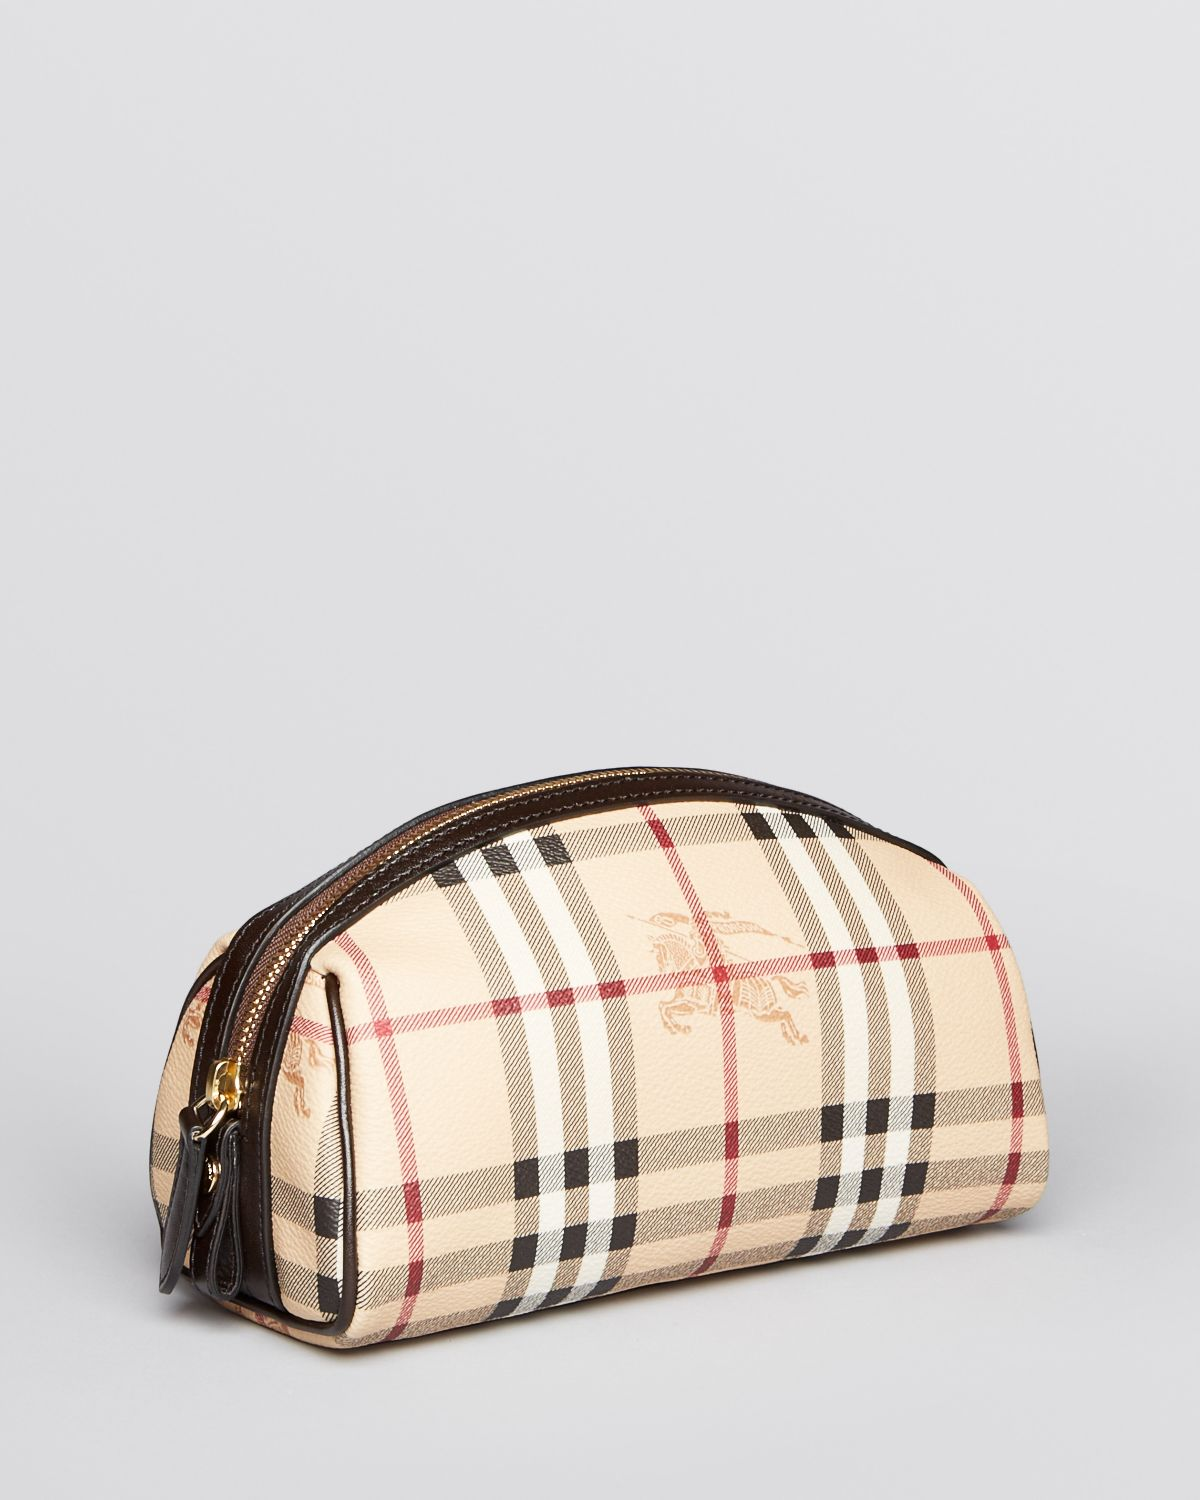 Lyst - Burberry Cosmetic Case Evelyn in Natural 5d34691919b6a